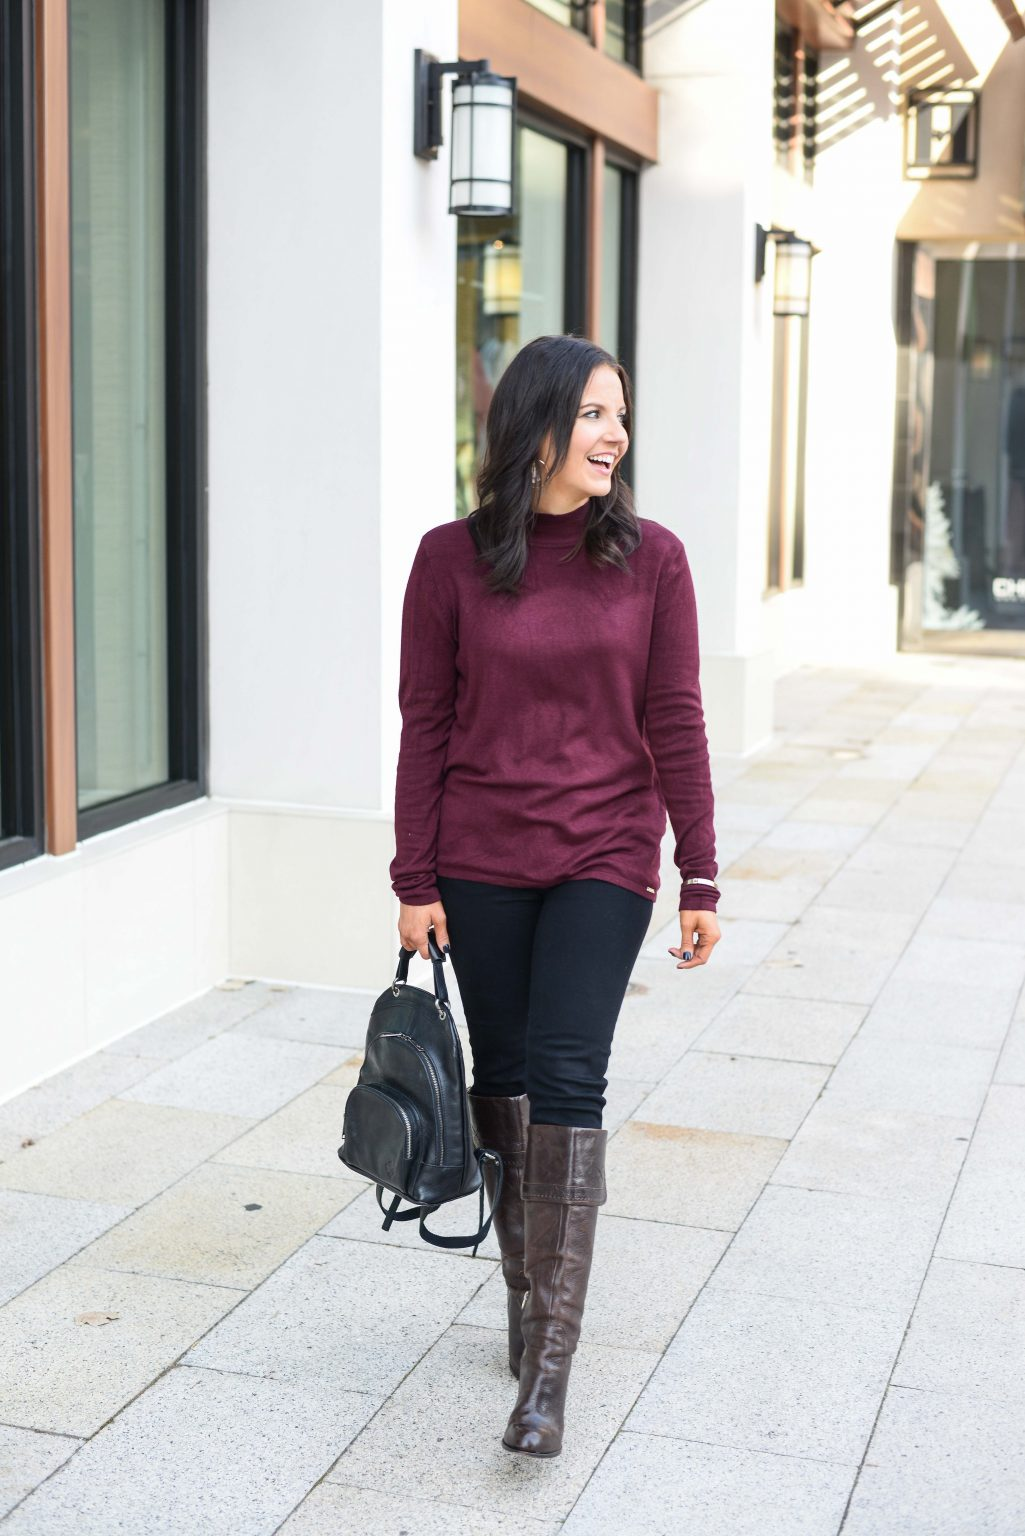 Fashion blogger Karen in maroon sweater and jeans